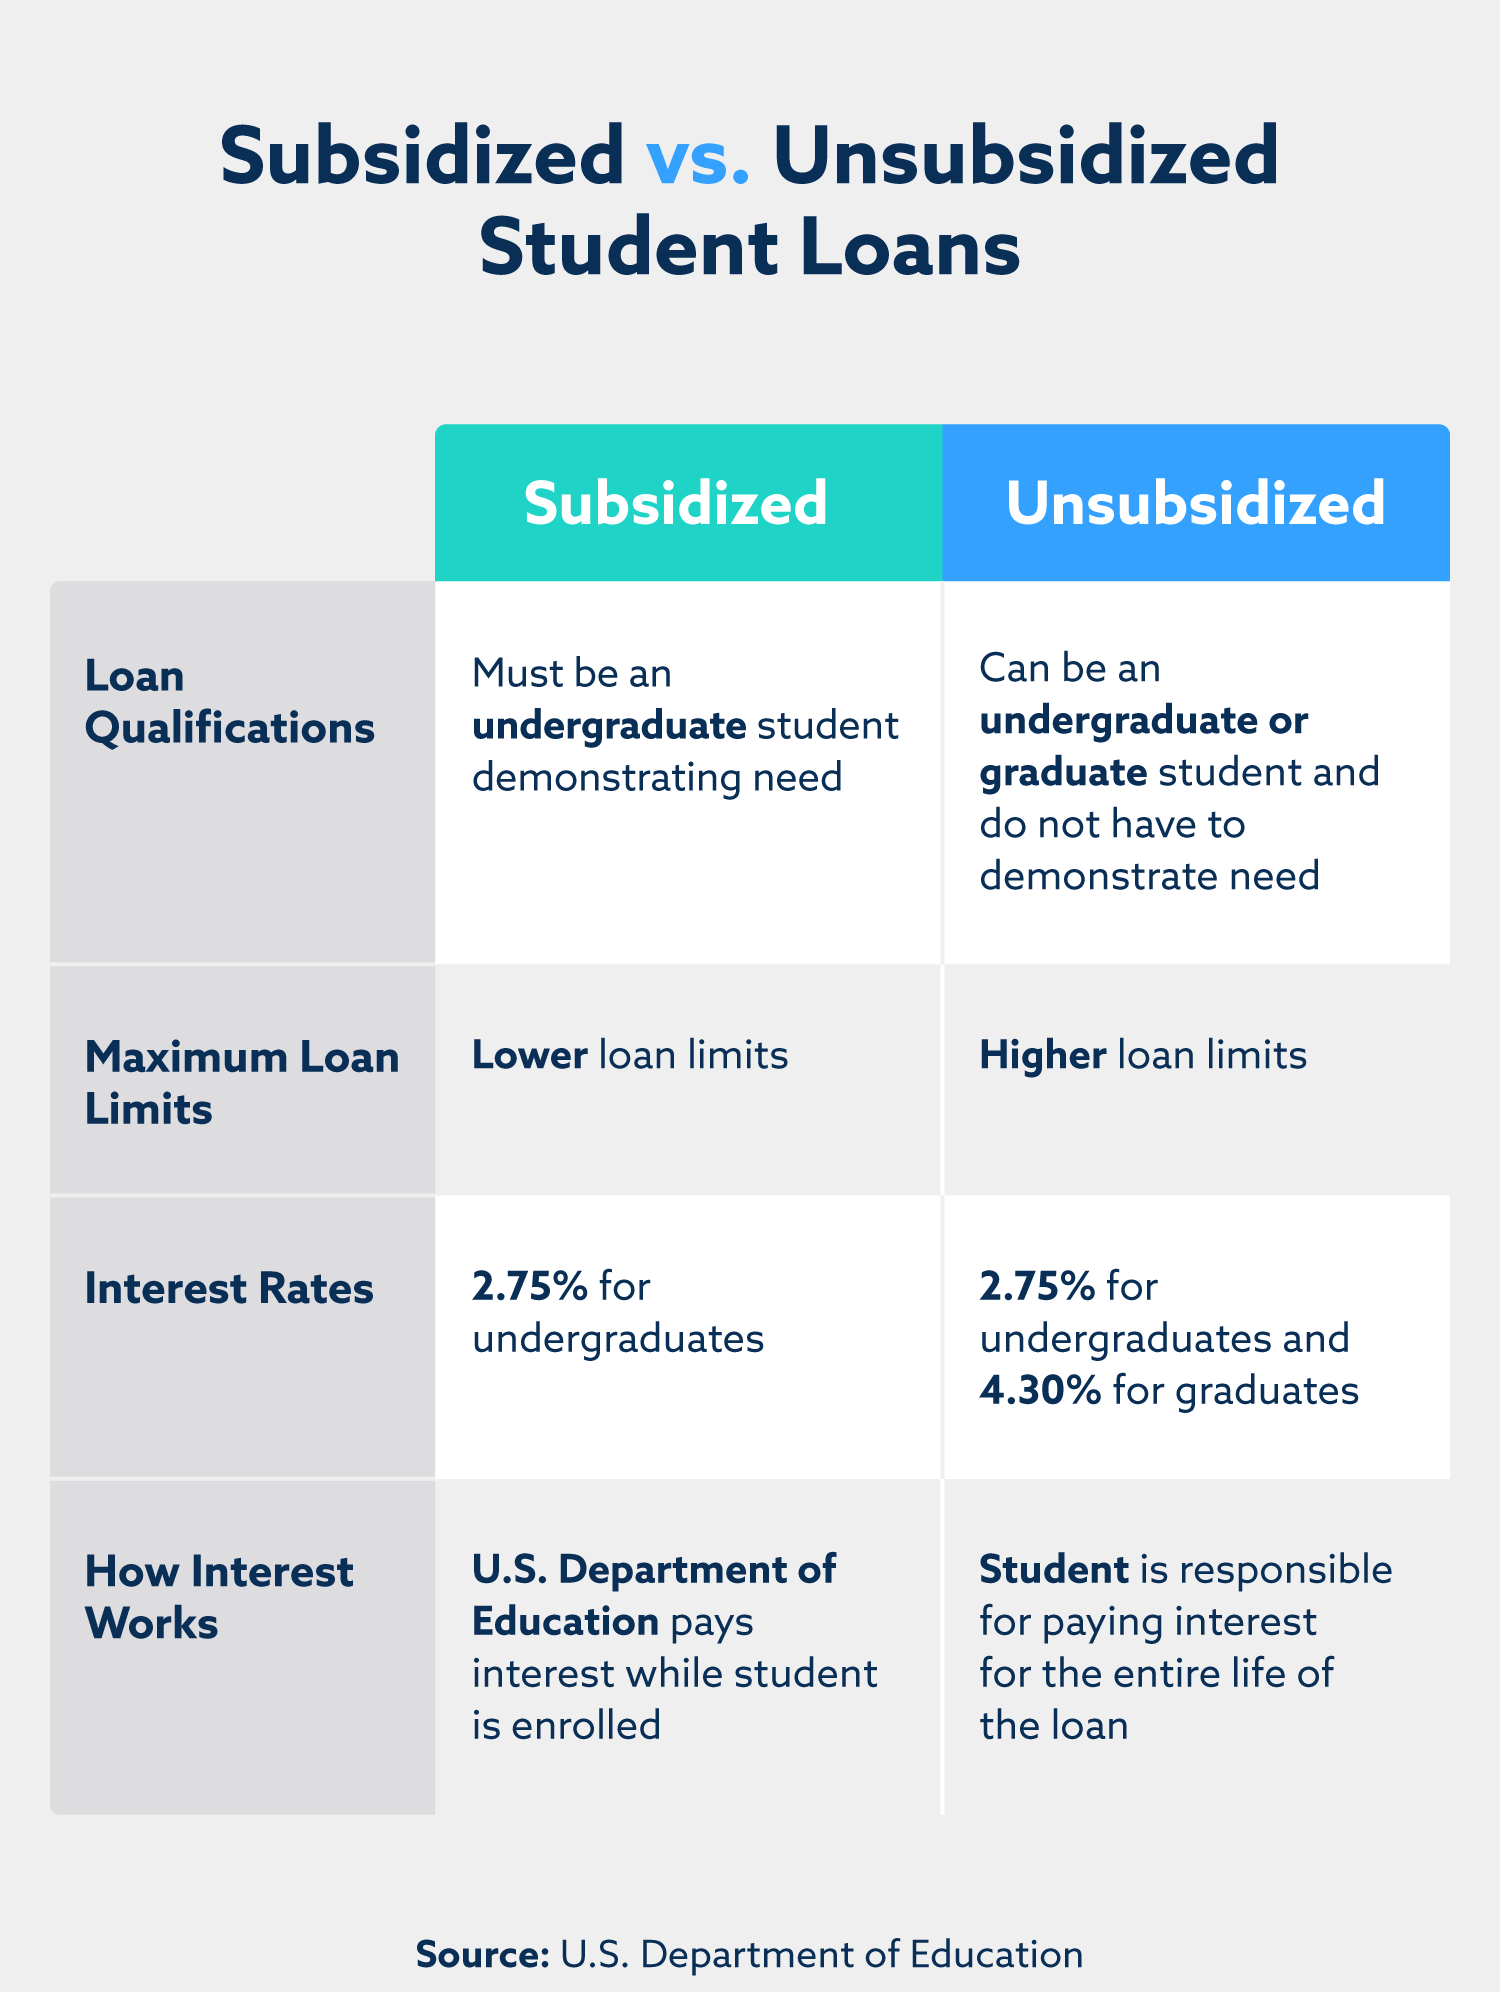 A chart displaying the differences between subsidized and unsubsidized student loans.